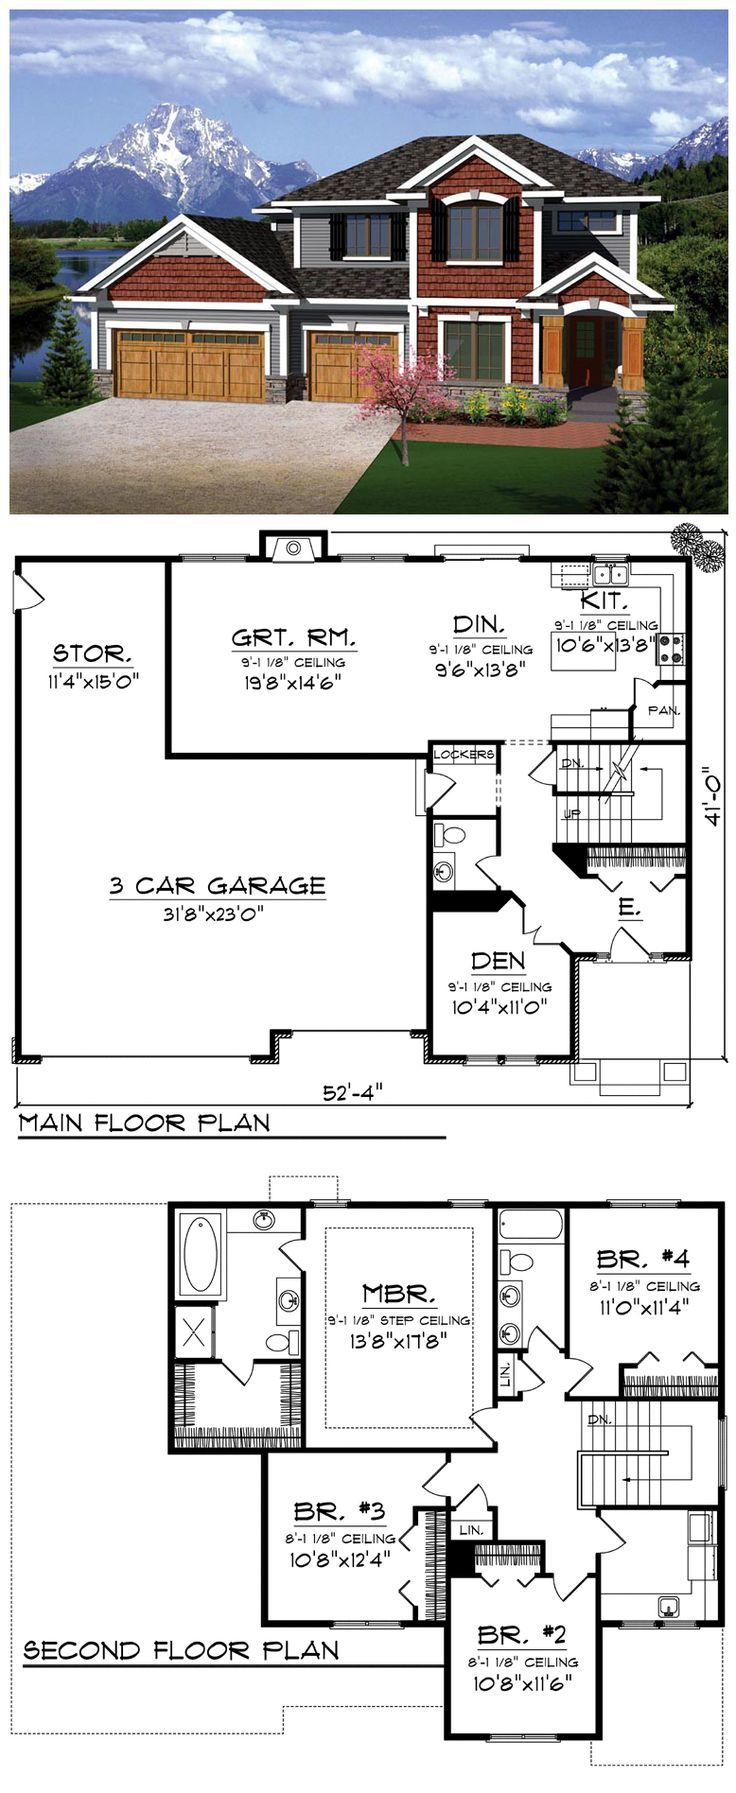 #Prairie #HousePlan 73144 | As you enter the home, the office lies just to the right while the main living area beckons you into the home from directly ahead. The kitchen features an island that flows into the casual dining space and great room to the left. Upstairs, the master suite features a step ceiling, spacious walk-in closet and private bath while three additional bedrooms have direct access to the full bath and laundry area just off the hallway.